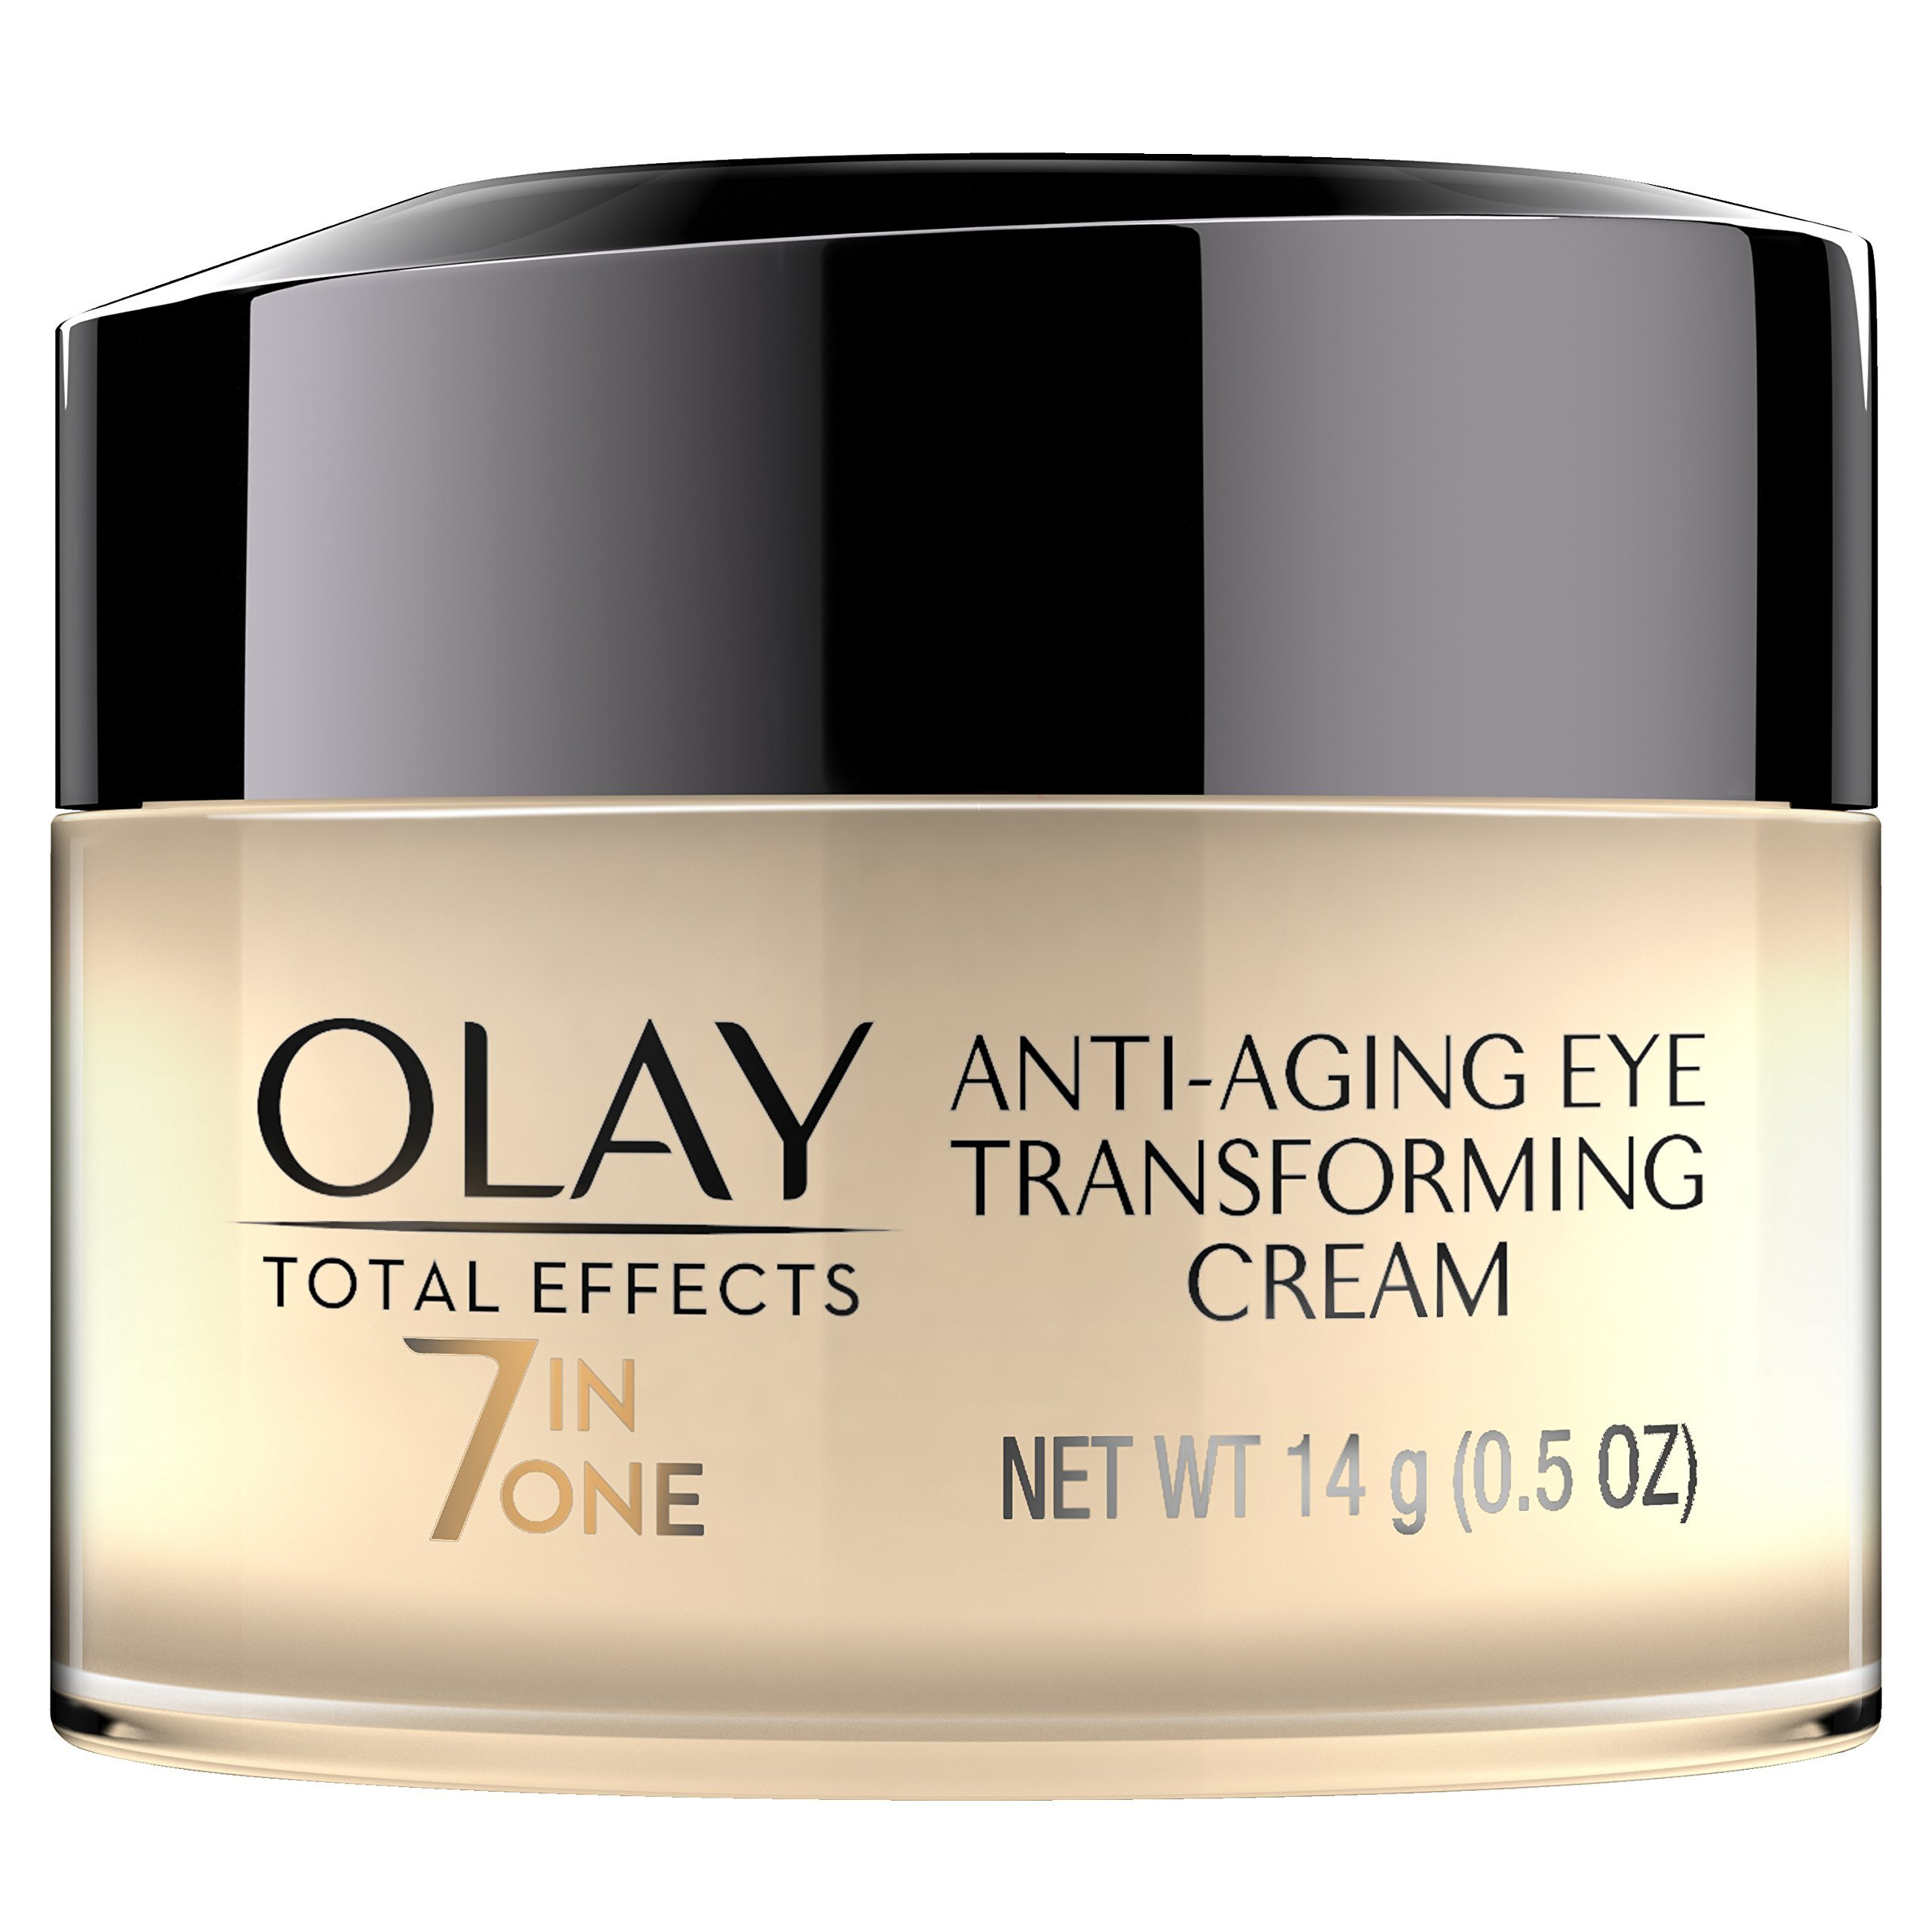 Olay Total Effects 7-in-one Anti-Aging Transforming Eye Cream 0.5 oz Packaging may Vary